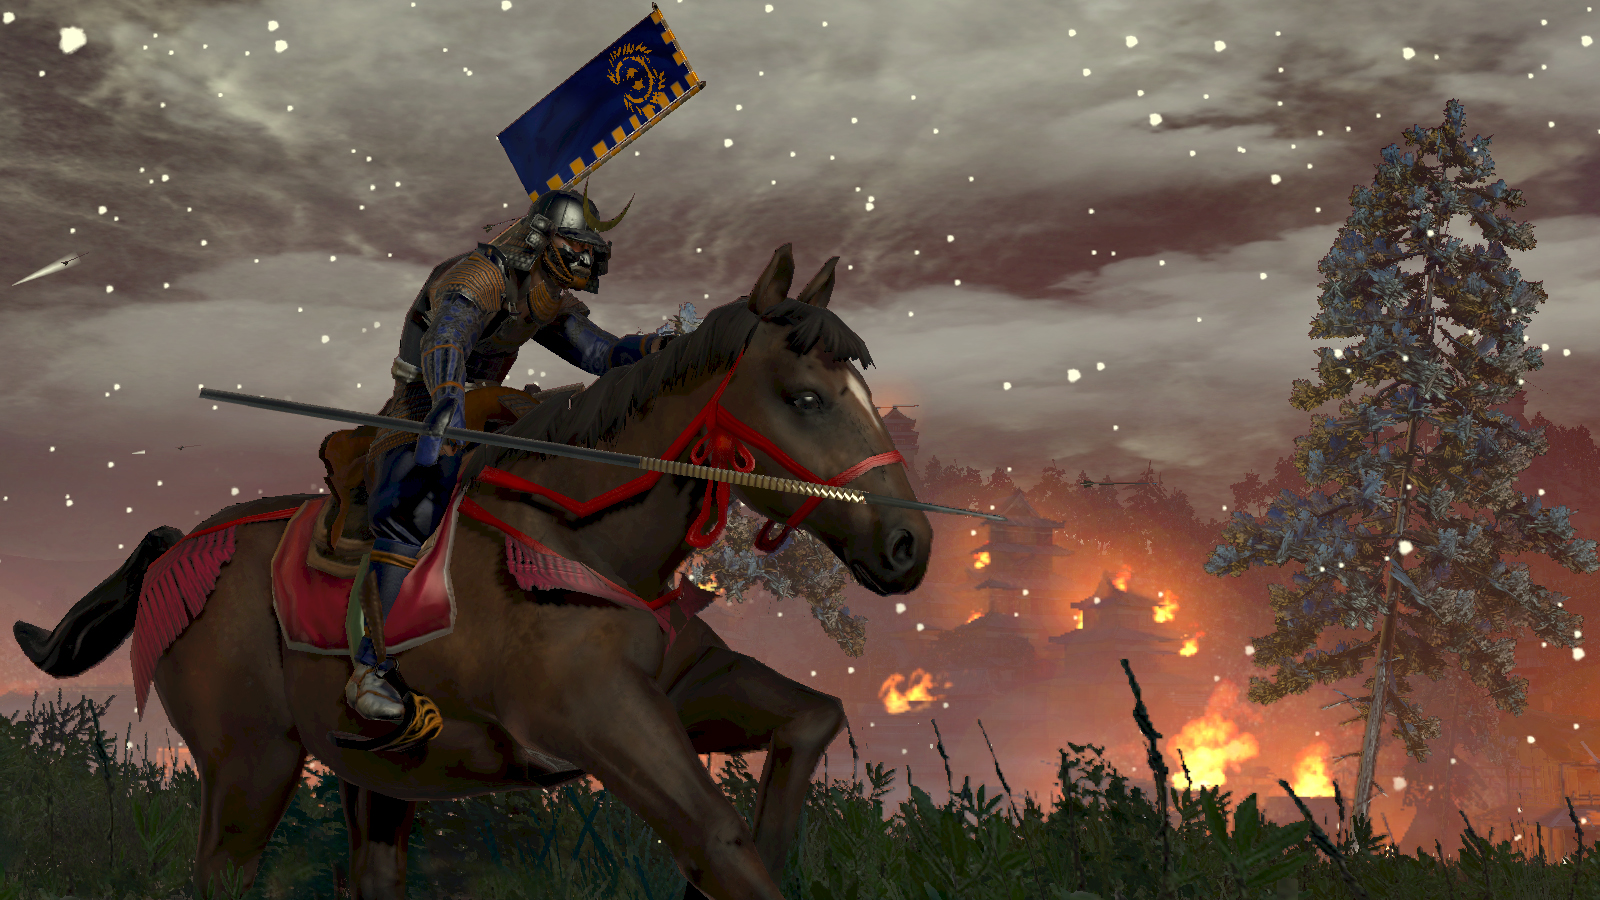 A screenshot of a warrior on horseback in Total War: Shogun 2.